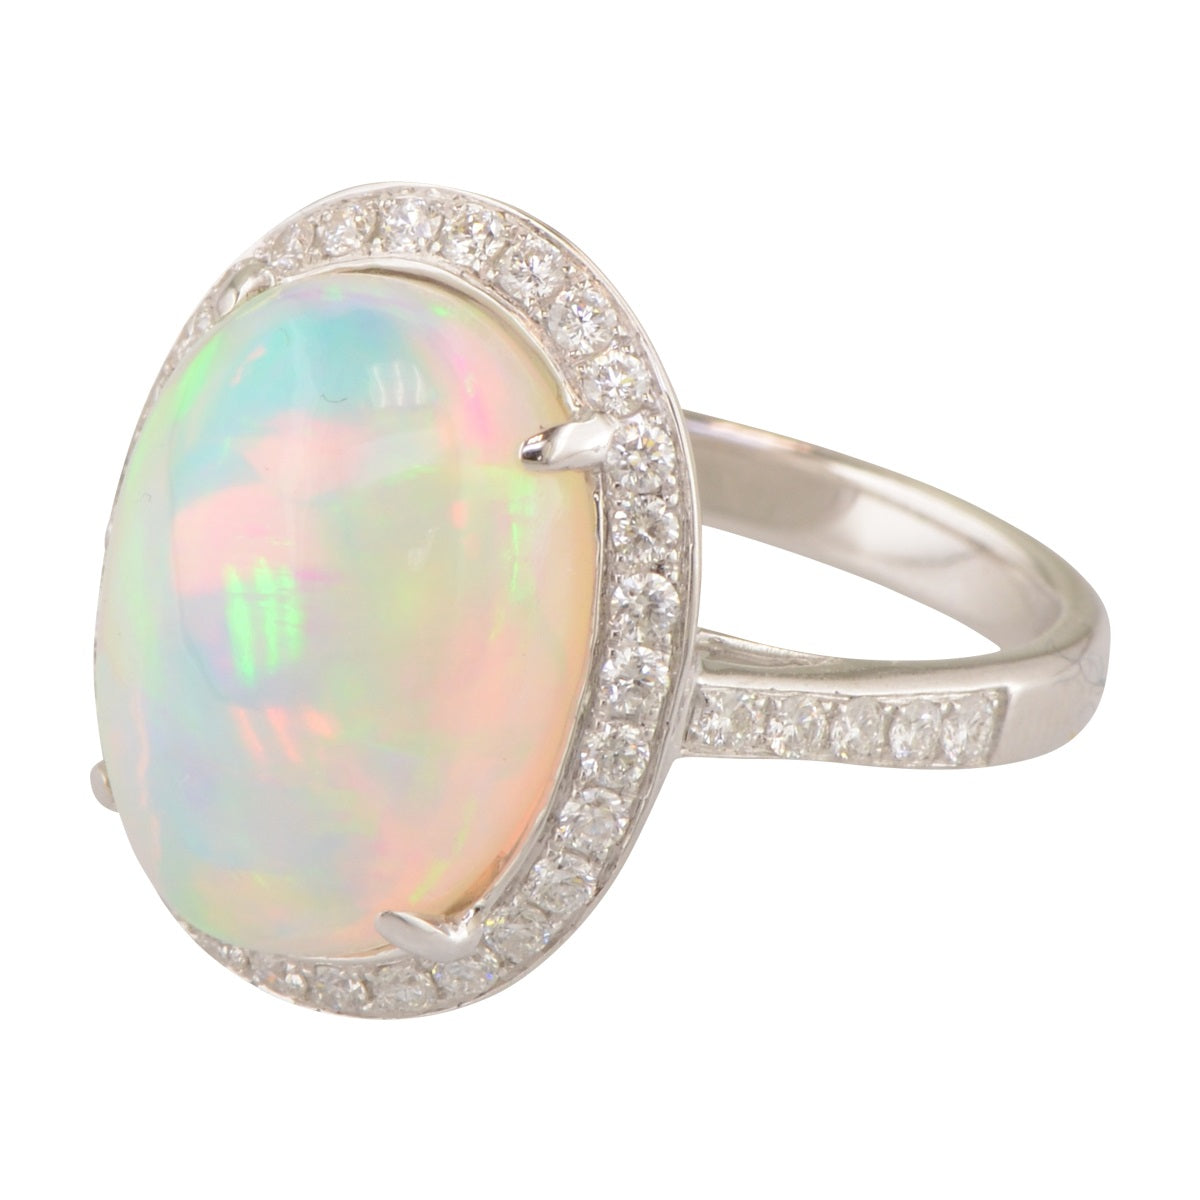 Natural Opal Ring with Diamond Halo